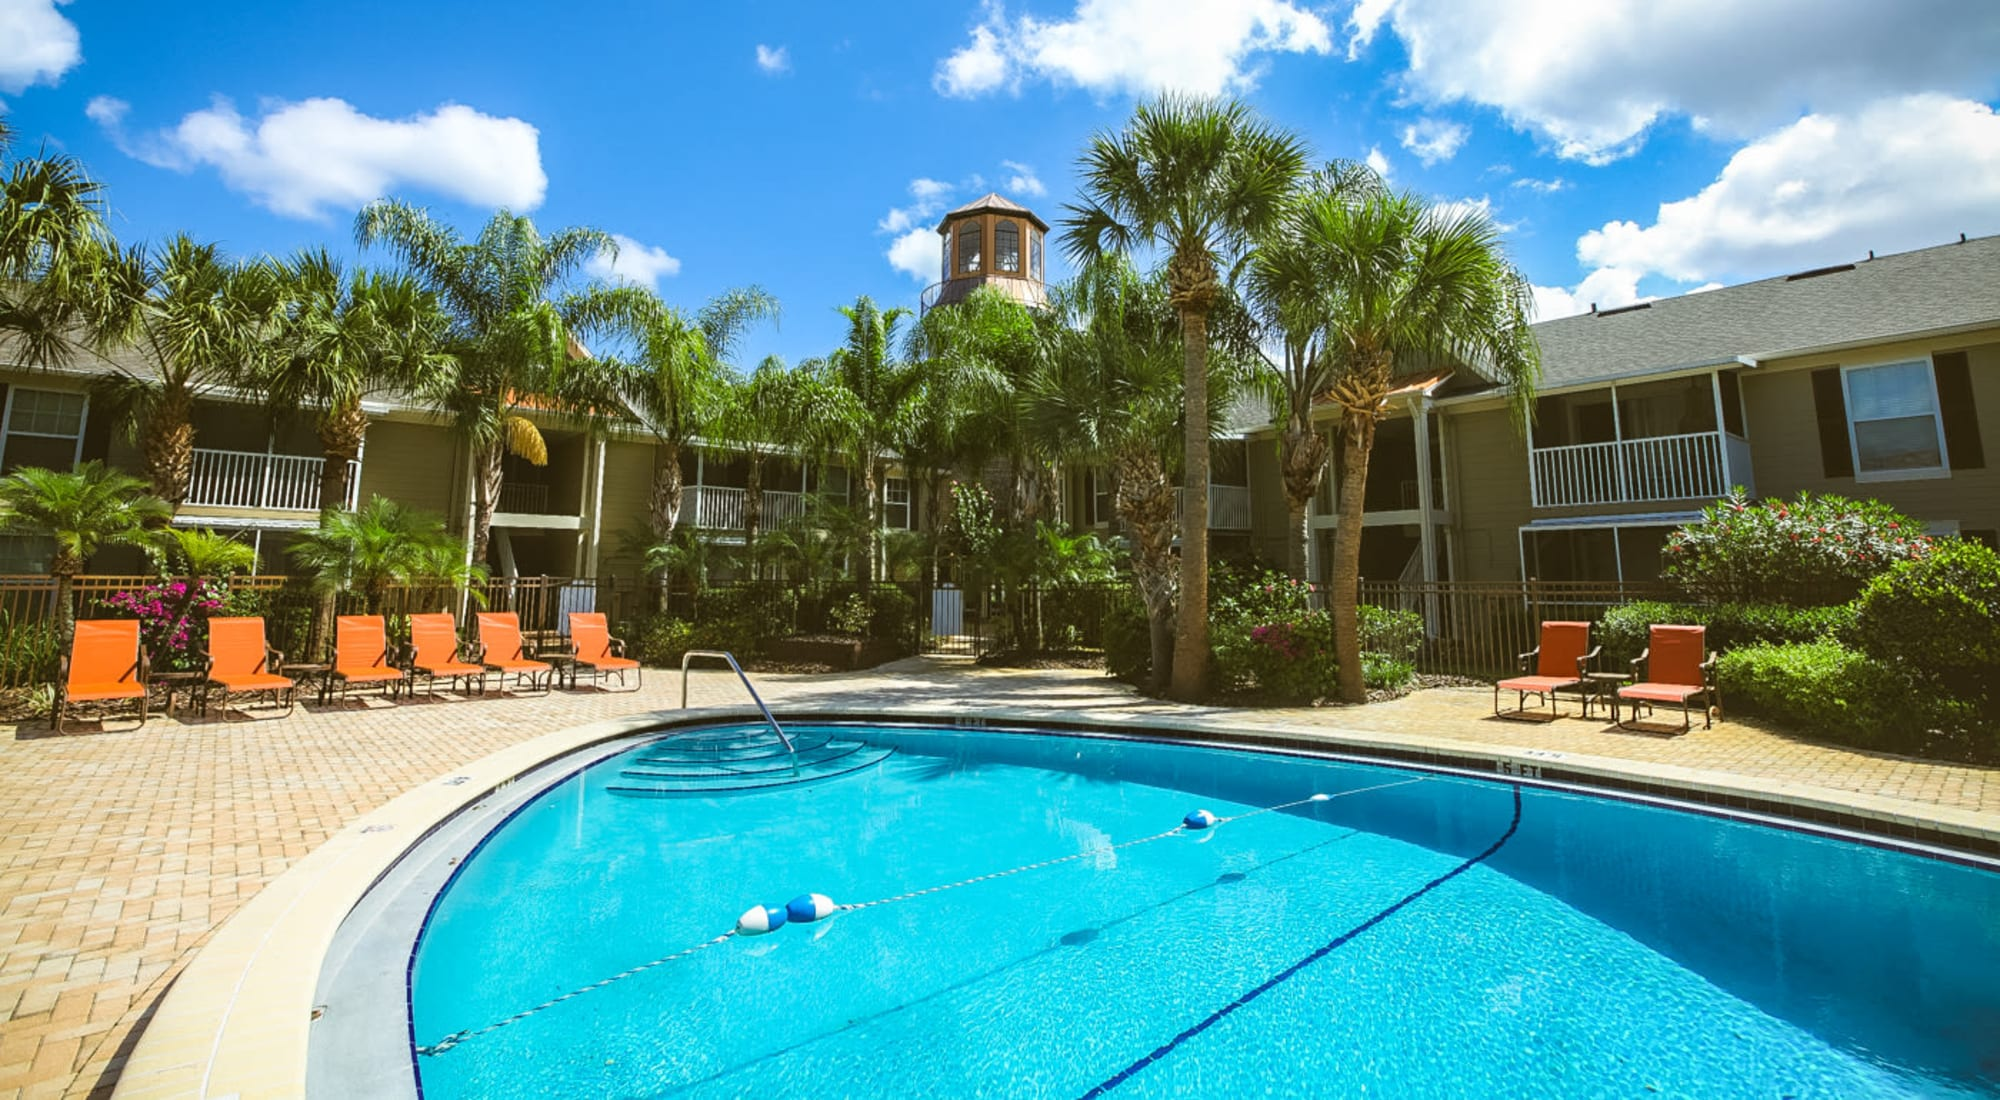 Apartments at Signal Pointe Apartment Homes in Winter Park, Florida